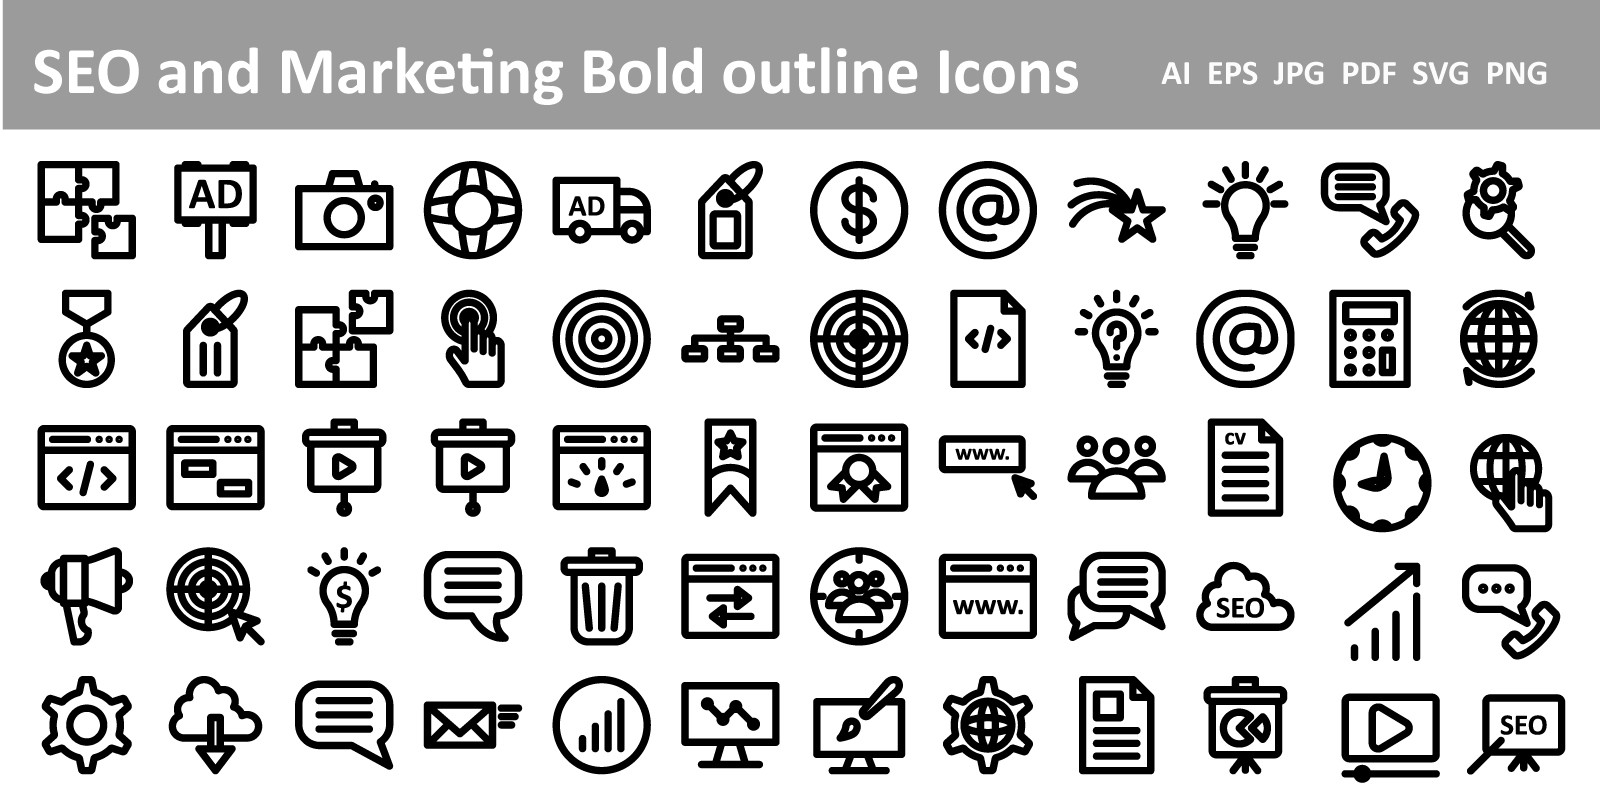 SEO And Marketing Bold Outline Icons